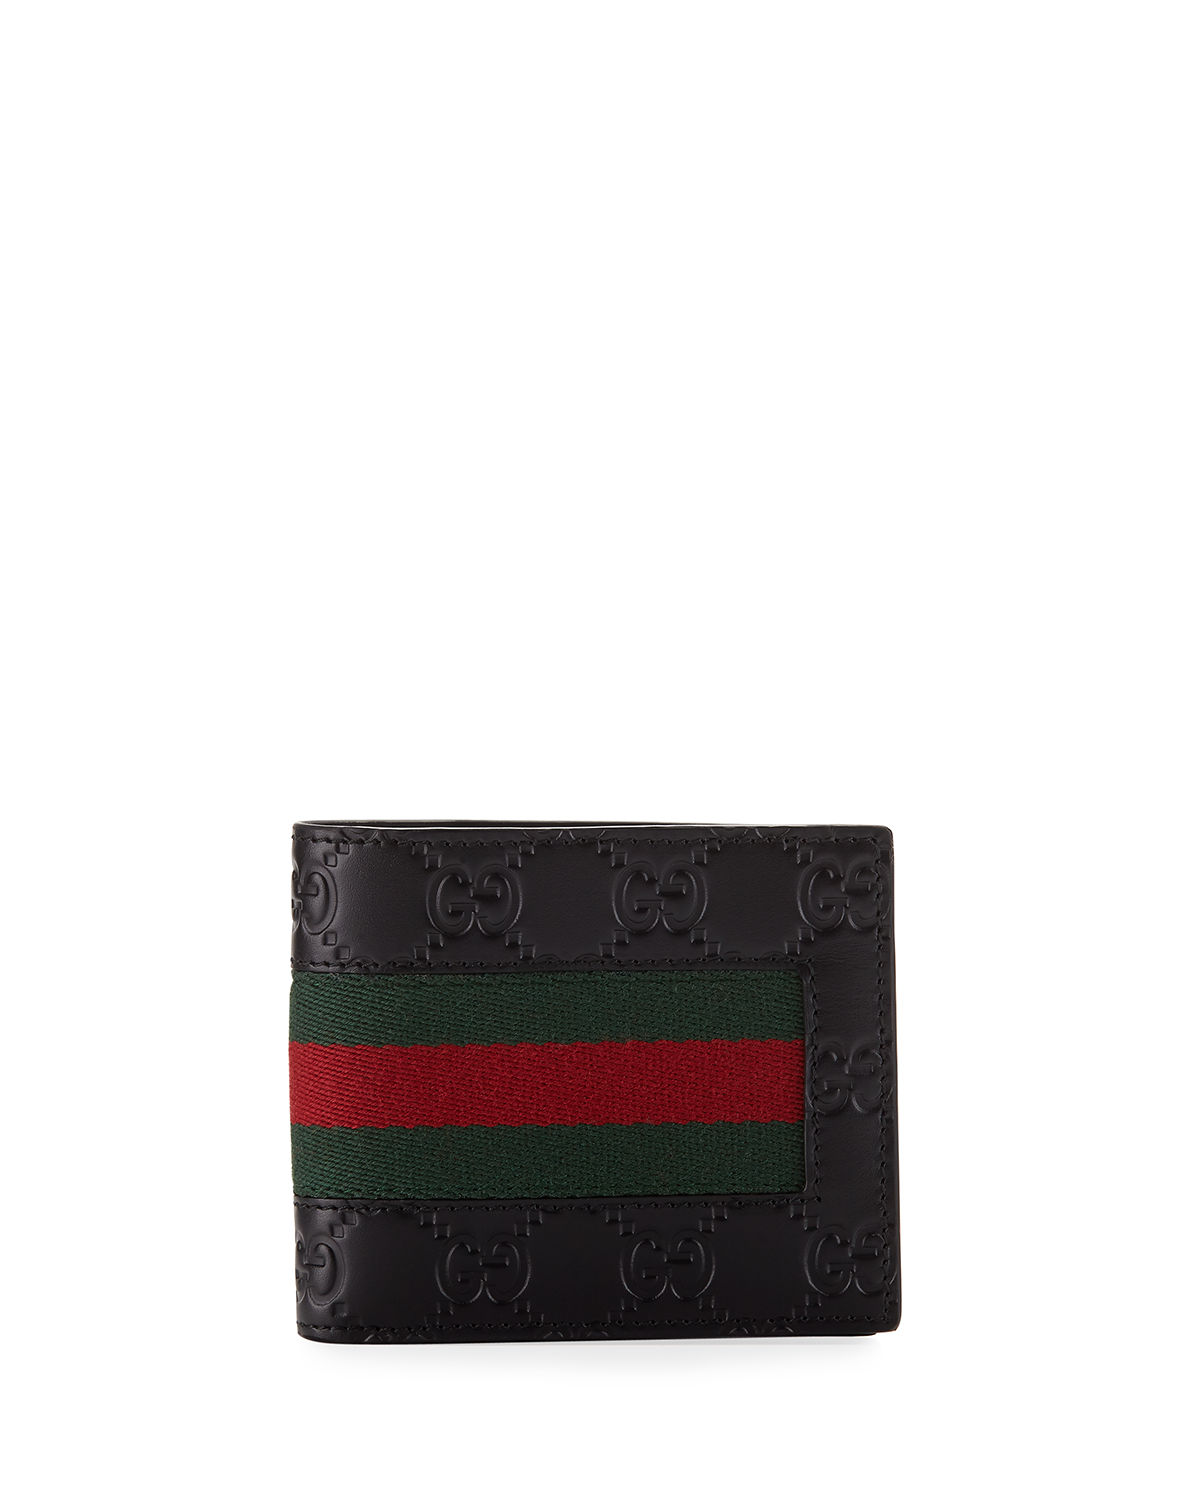 8f1be0f0d5b8 Gucci Logo-Embossed Signature Web Wallet | Neiman Marcus